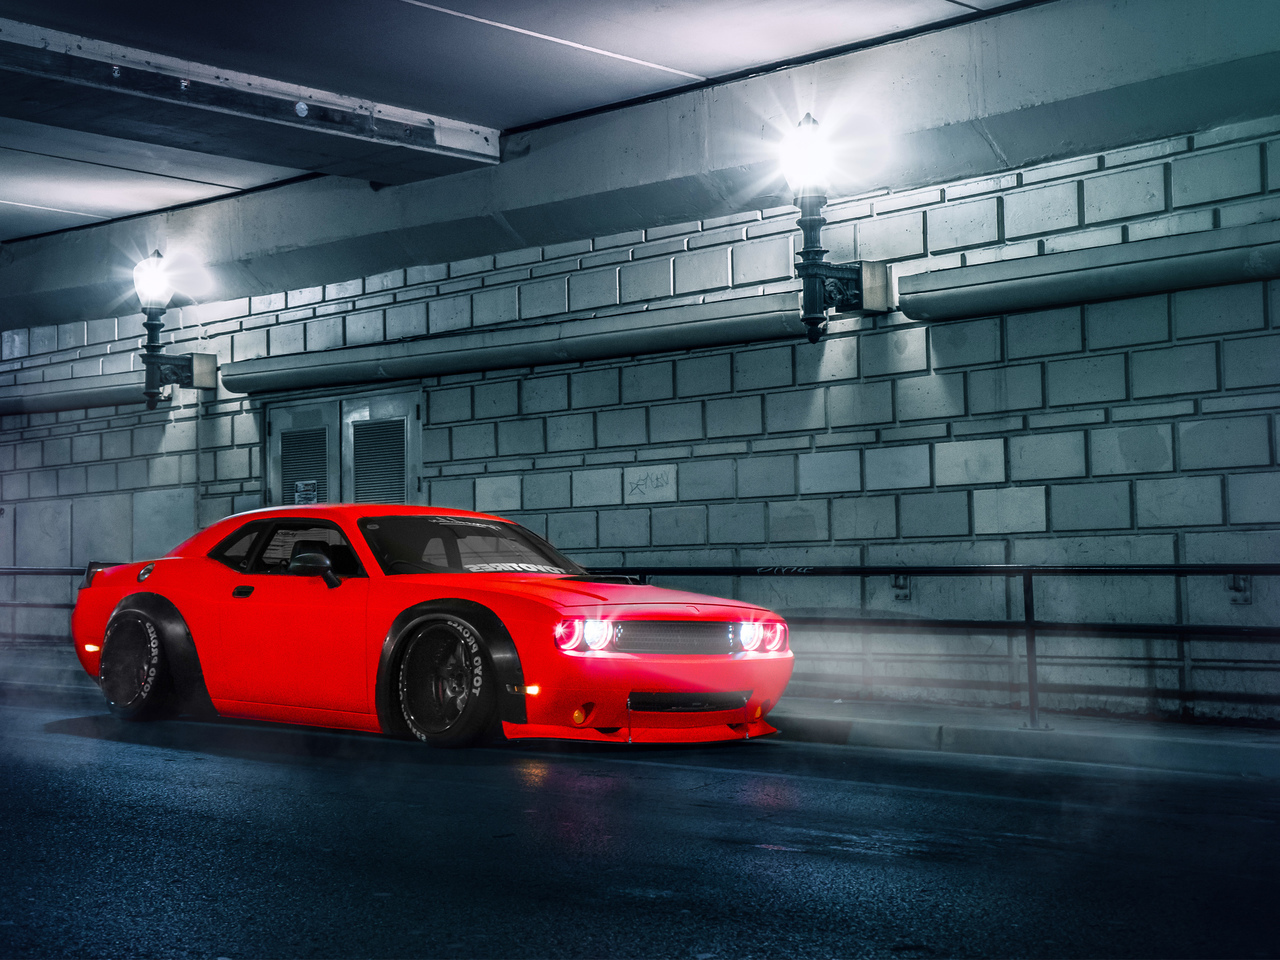 2015 Dodge Challenger SRT (1280x960)